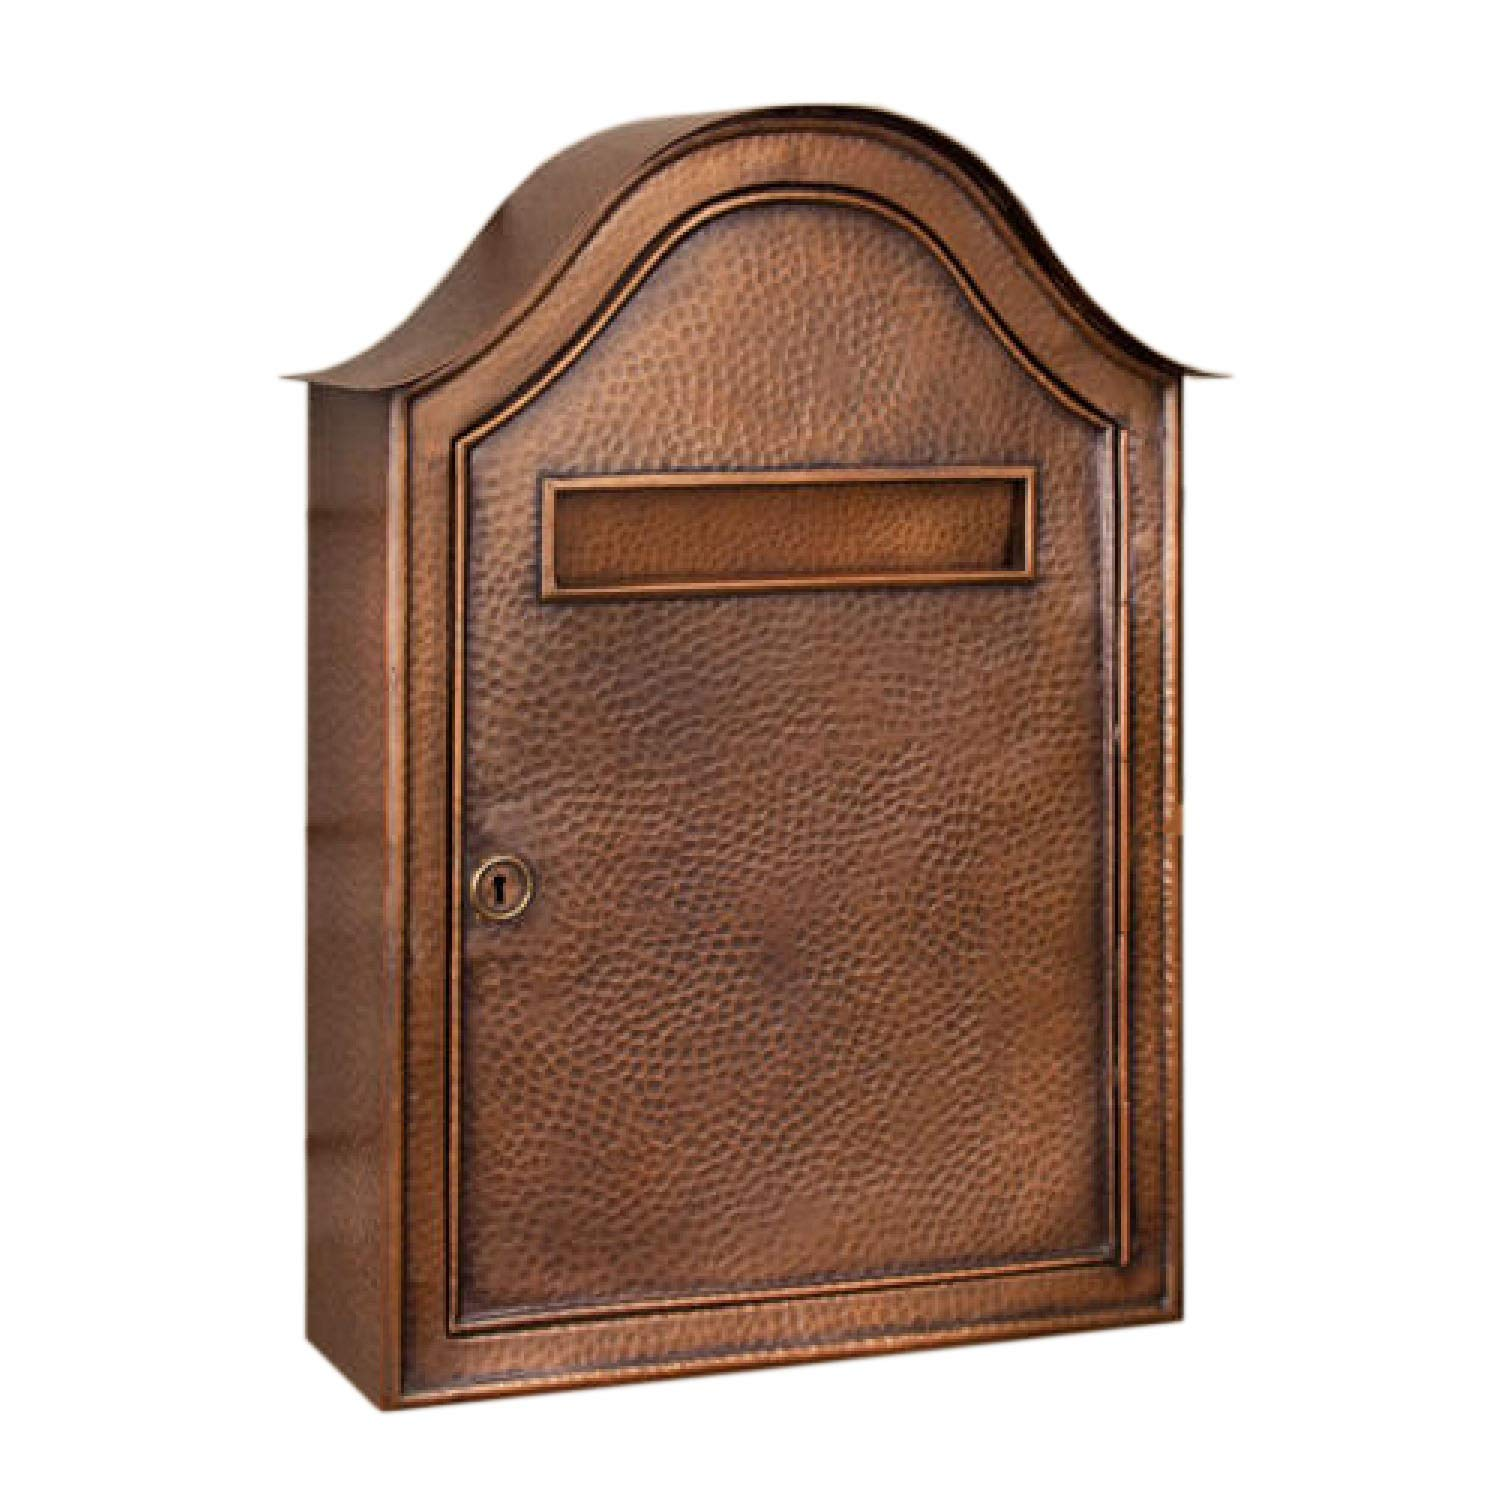 Naiture Copper Large Hammered Wall-Mount Mailbox in Antique Copper Finish